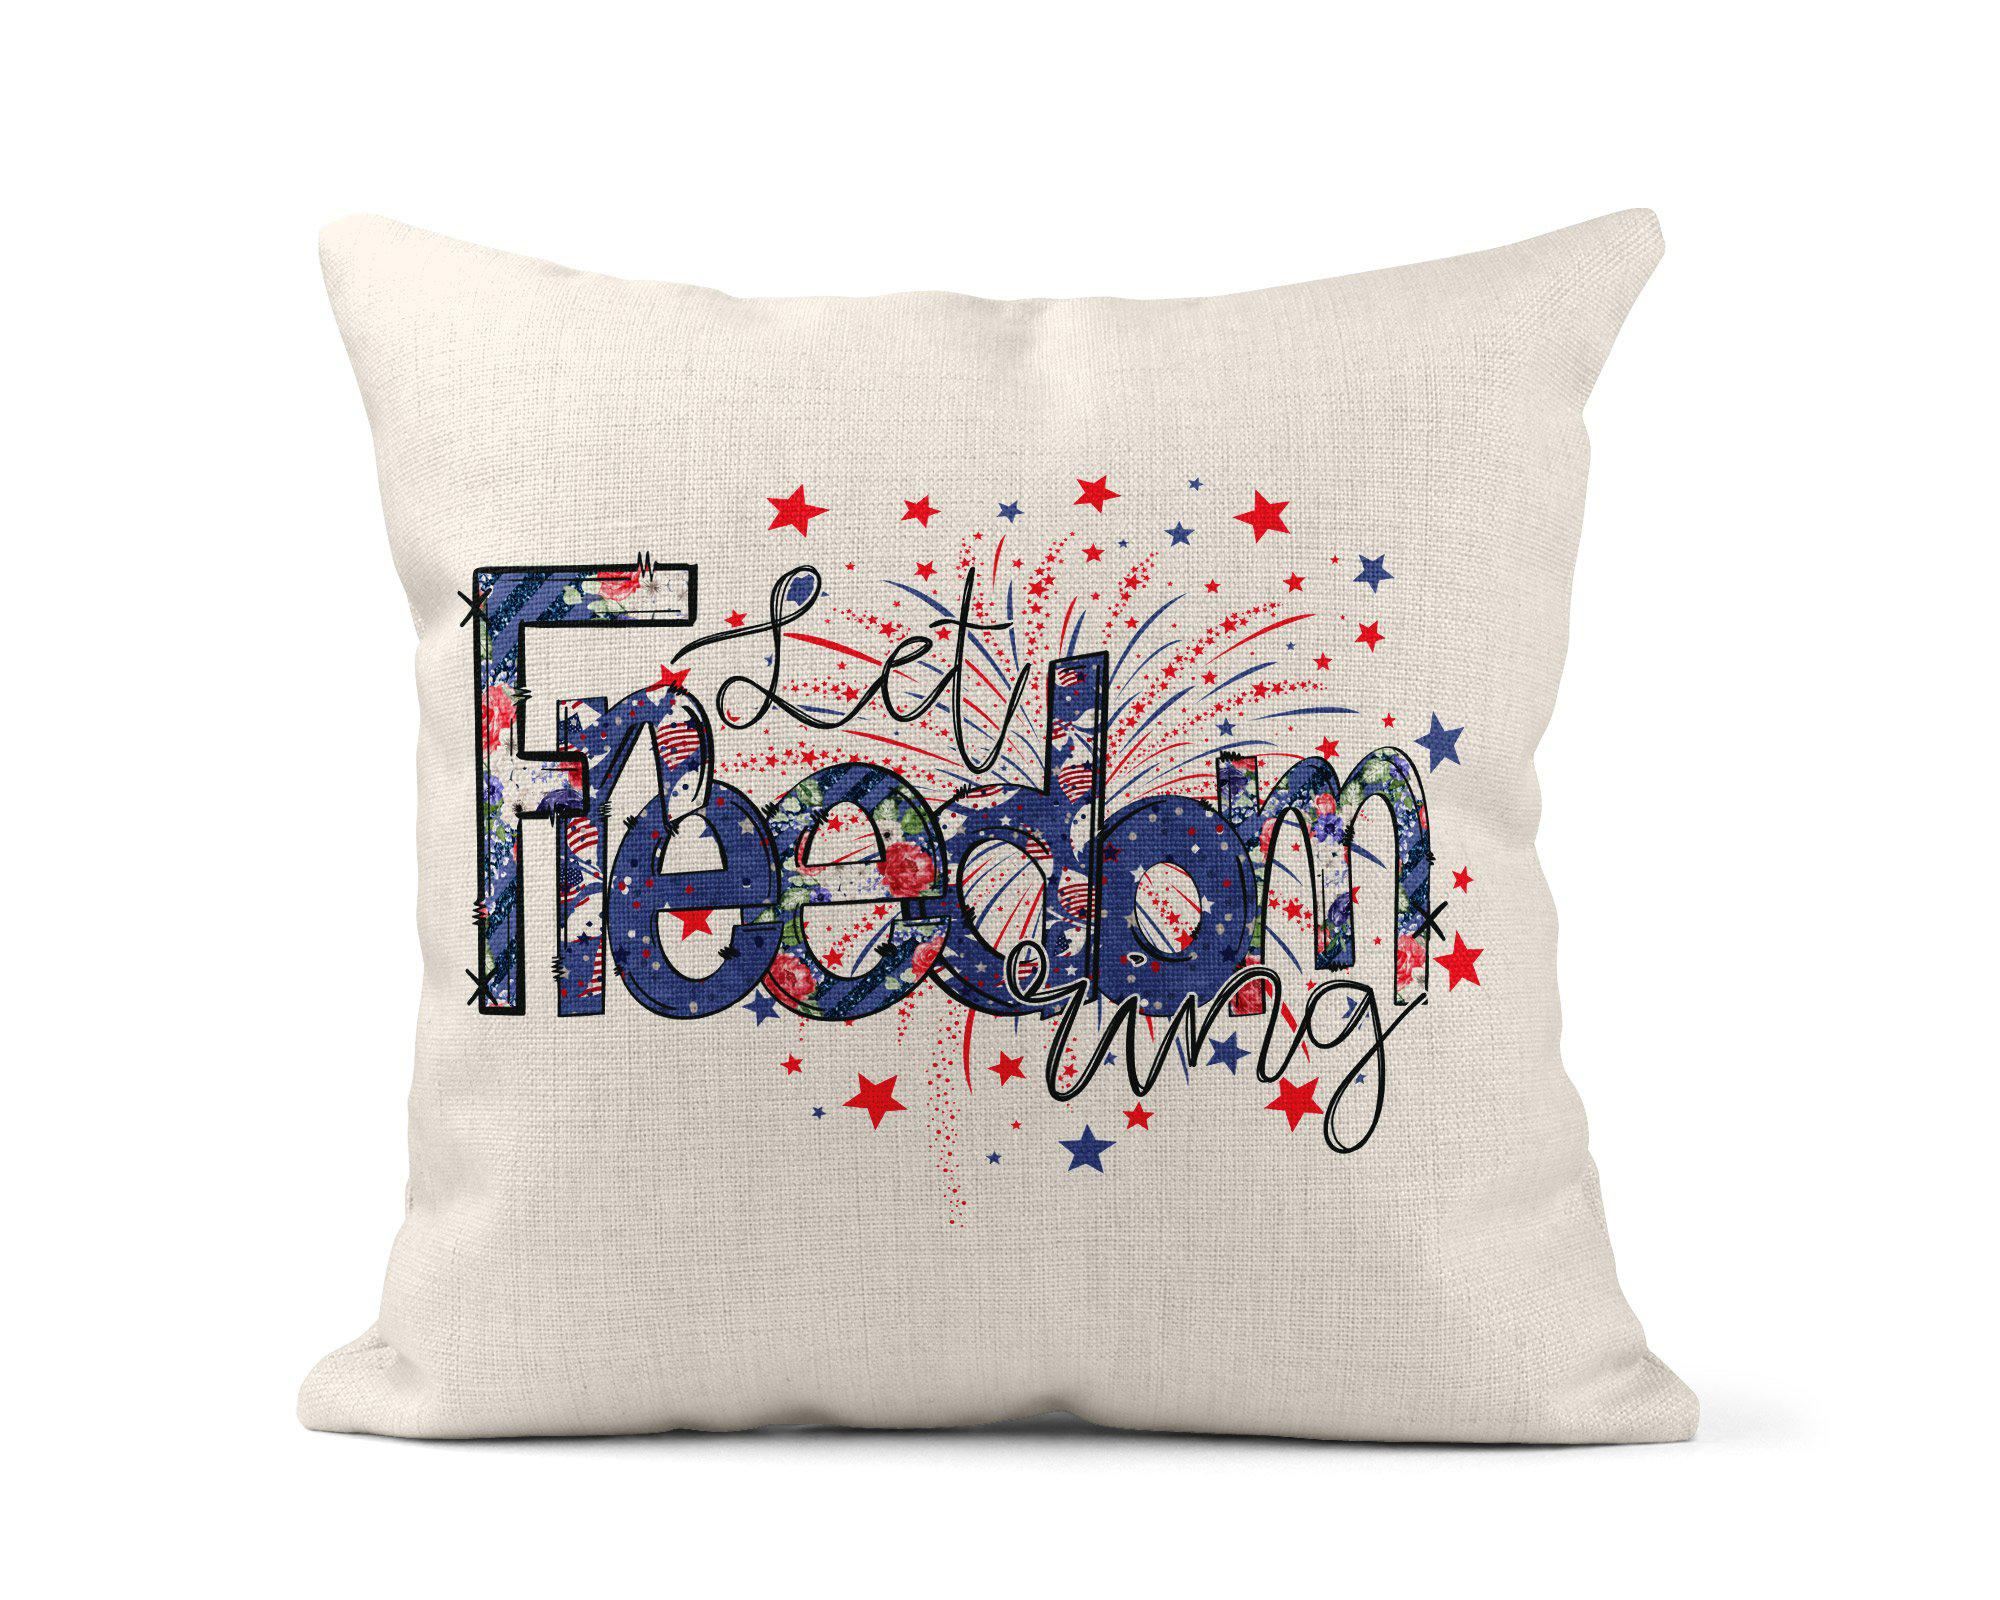 Let Freedom Ring Throw Pillow-Home Decor-Maddie & Co.